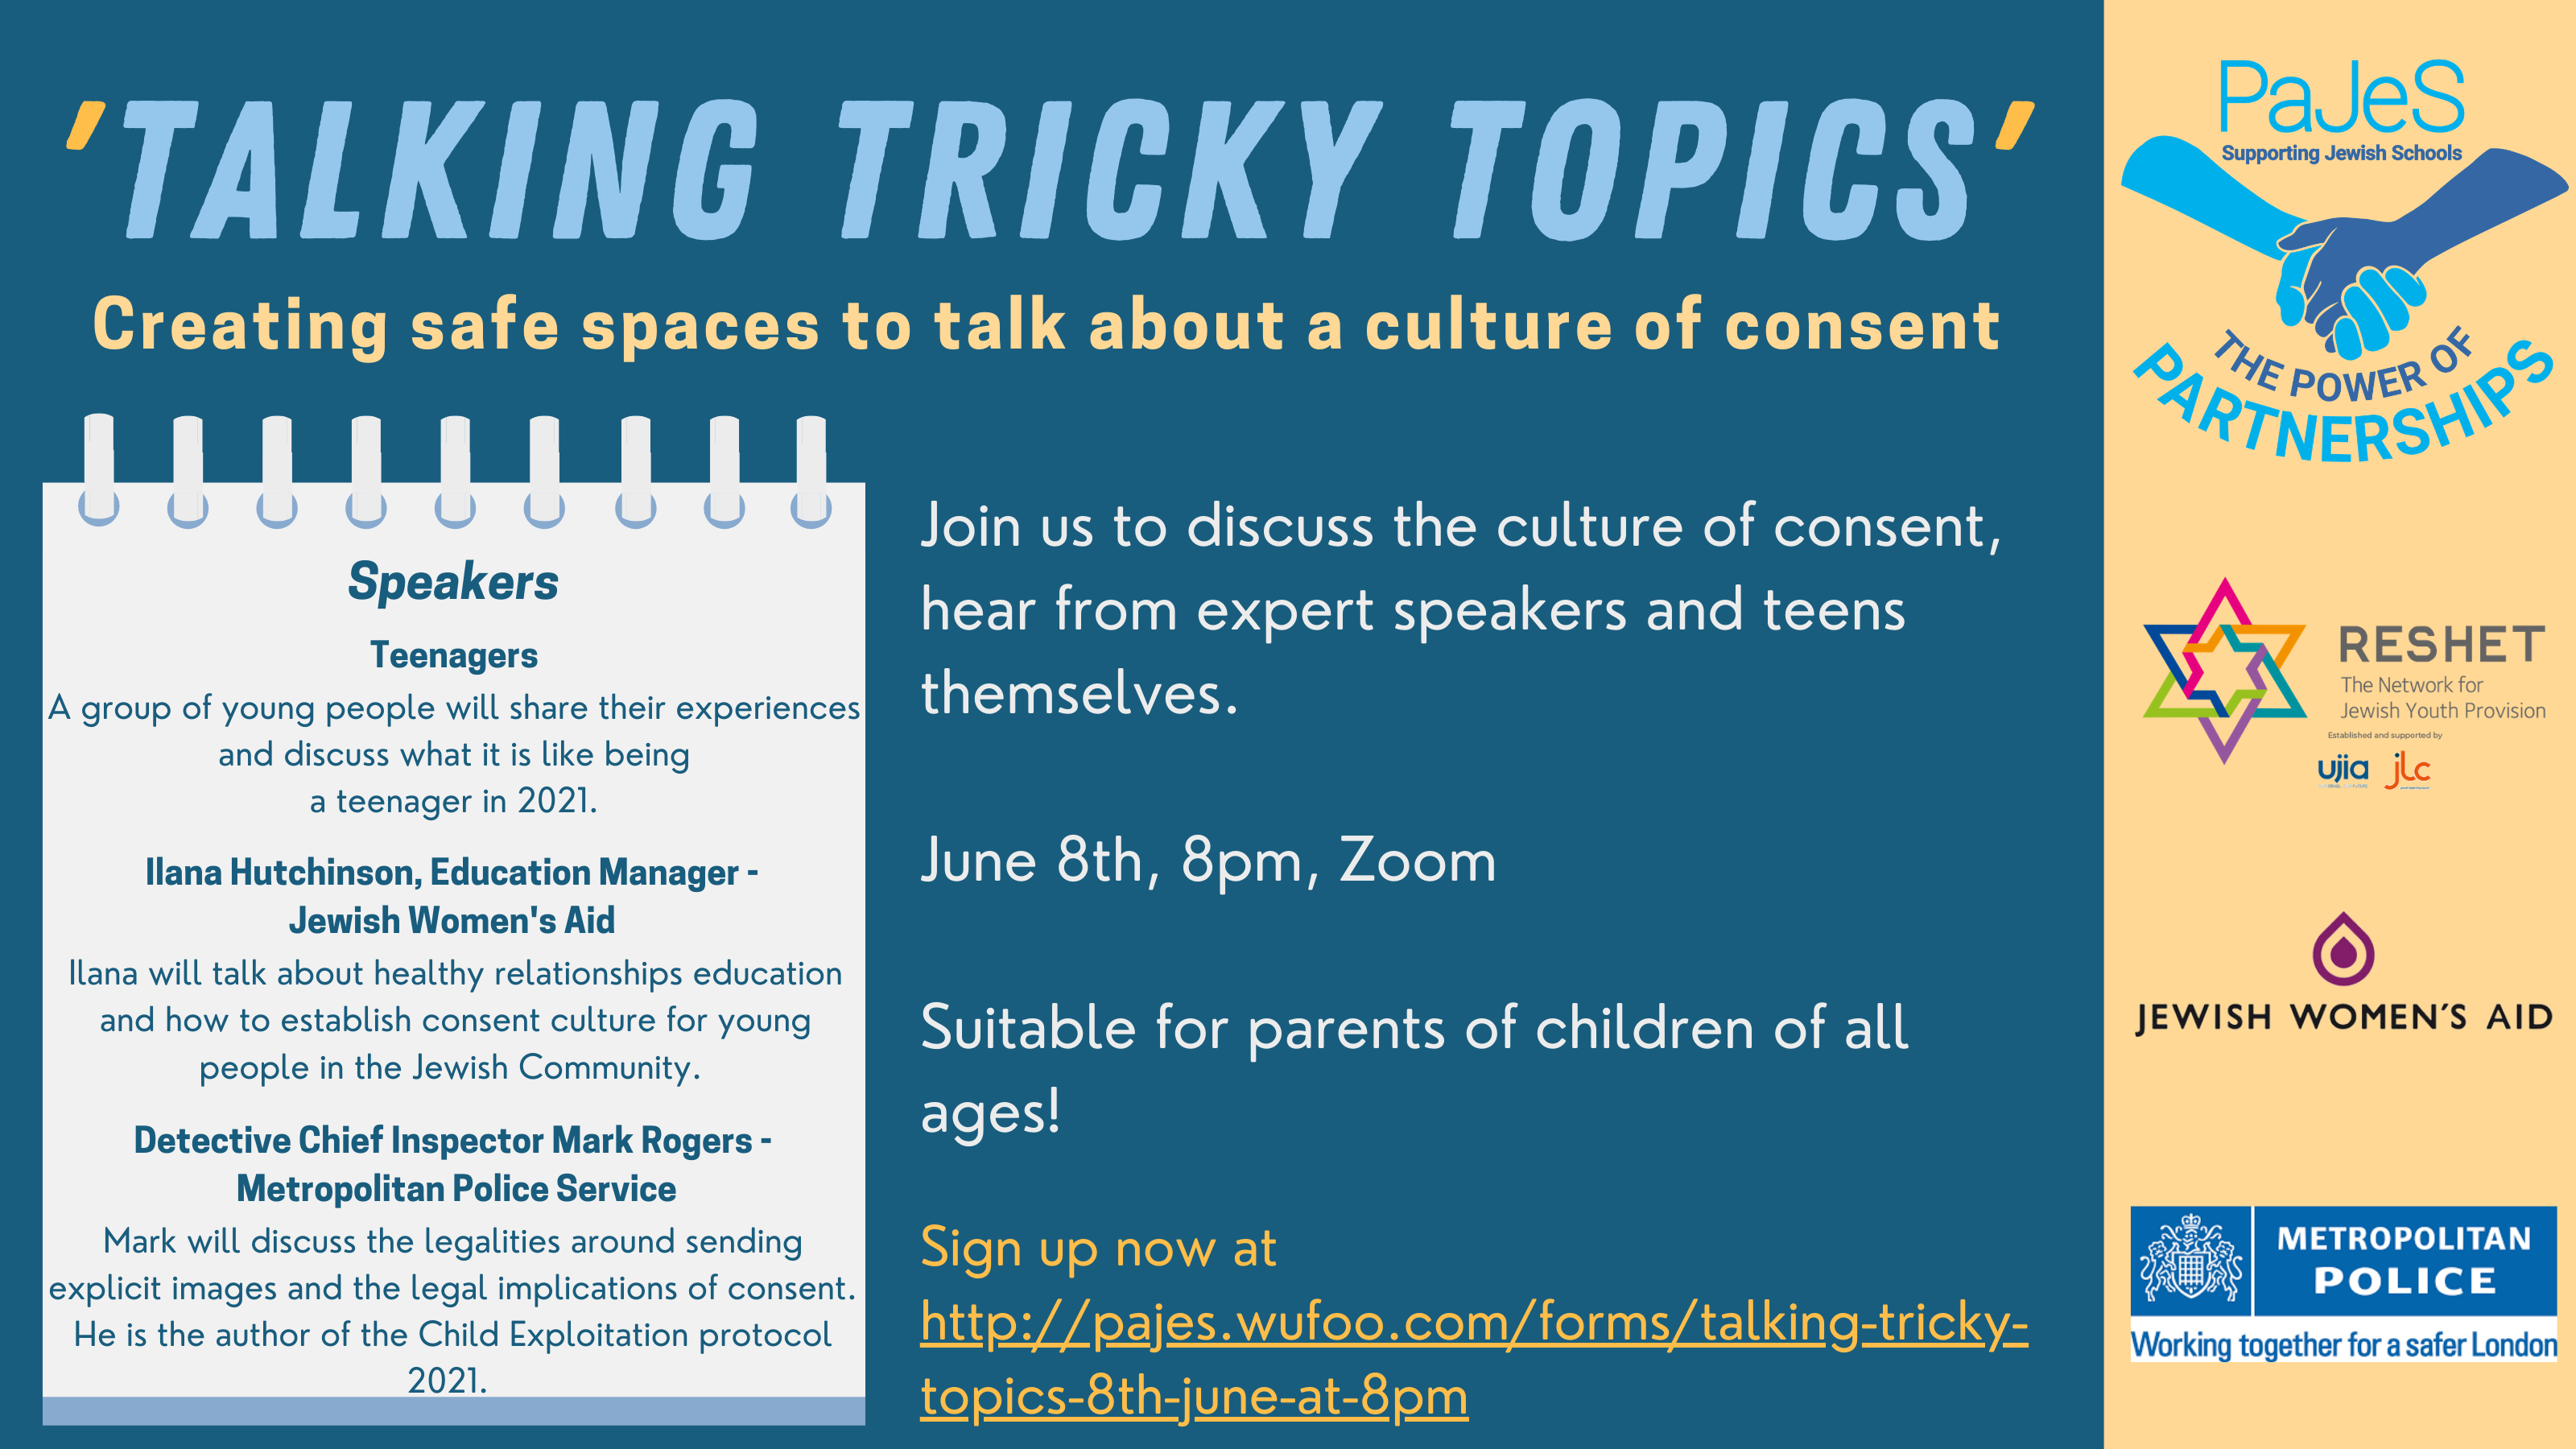 Join_us_to_discuss_the_culture_of_consent__hear_from_expert_speakers_and_teens_themselves._(3).png